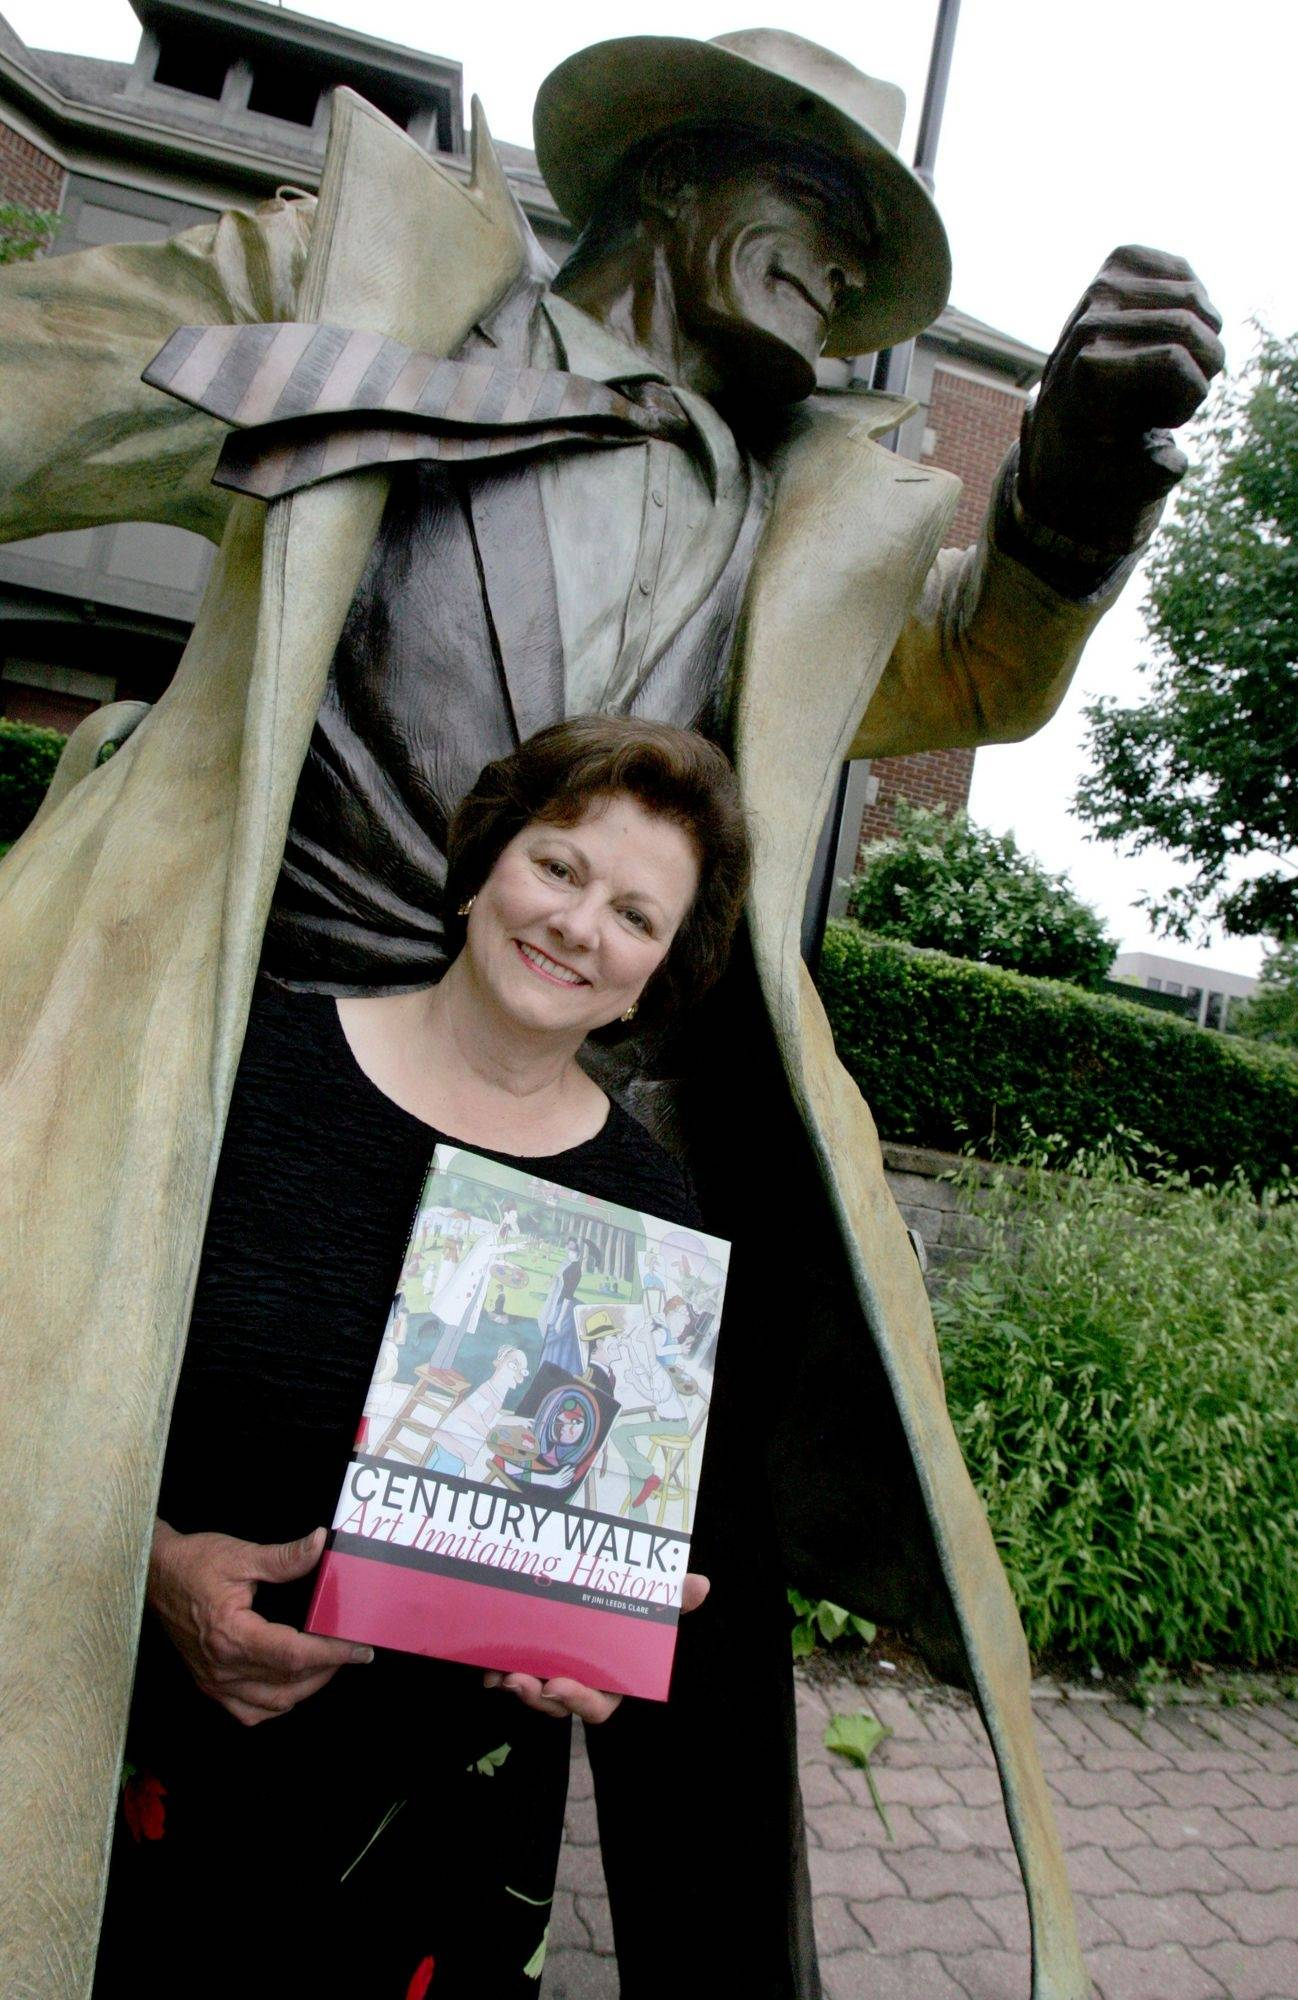 New book details Century Walk art and its homage to Naperville's past